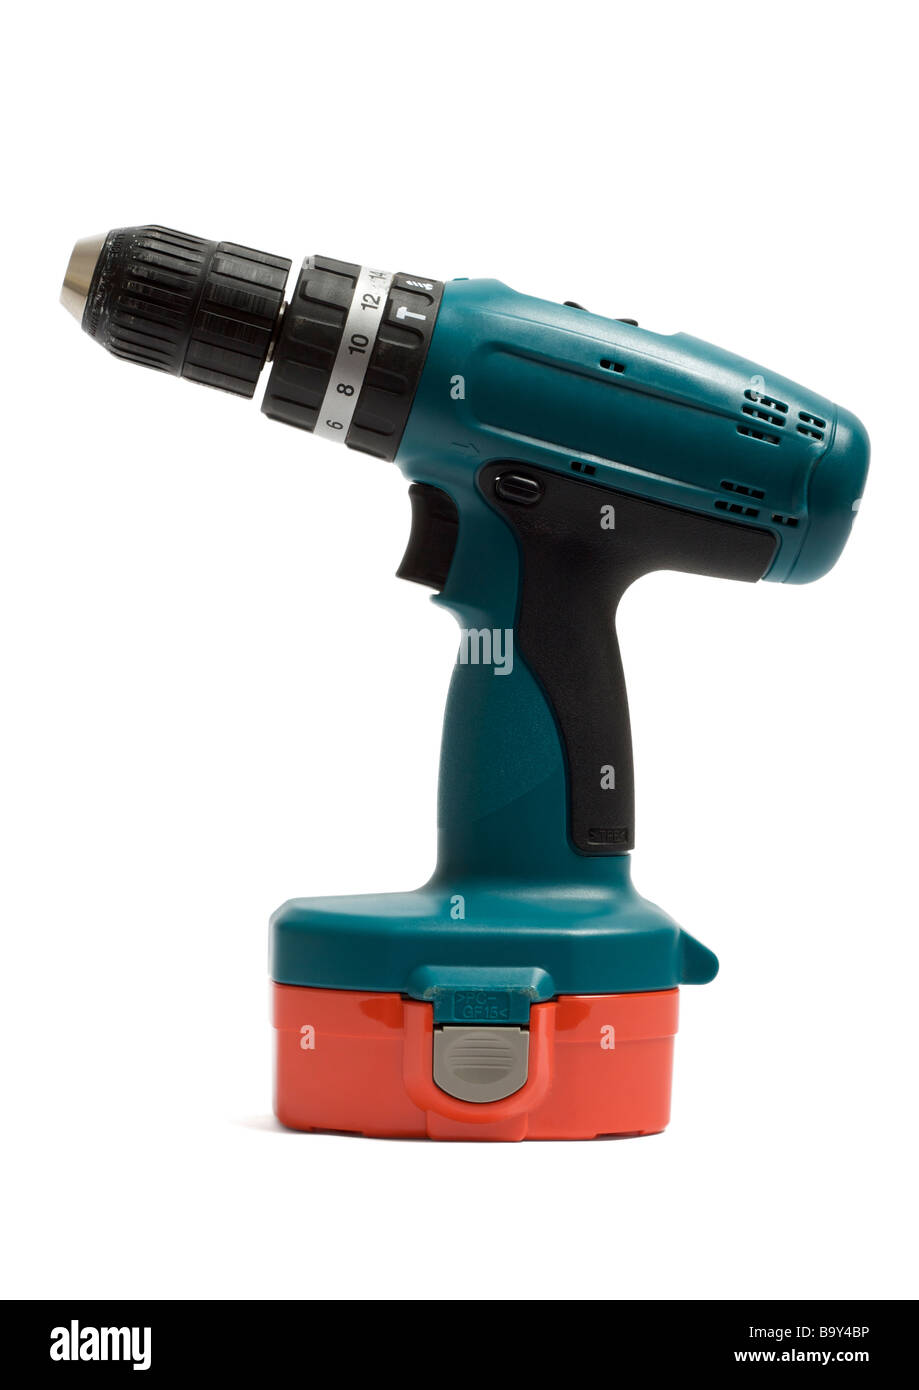 Cordless drill on white background - Stock Image